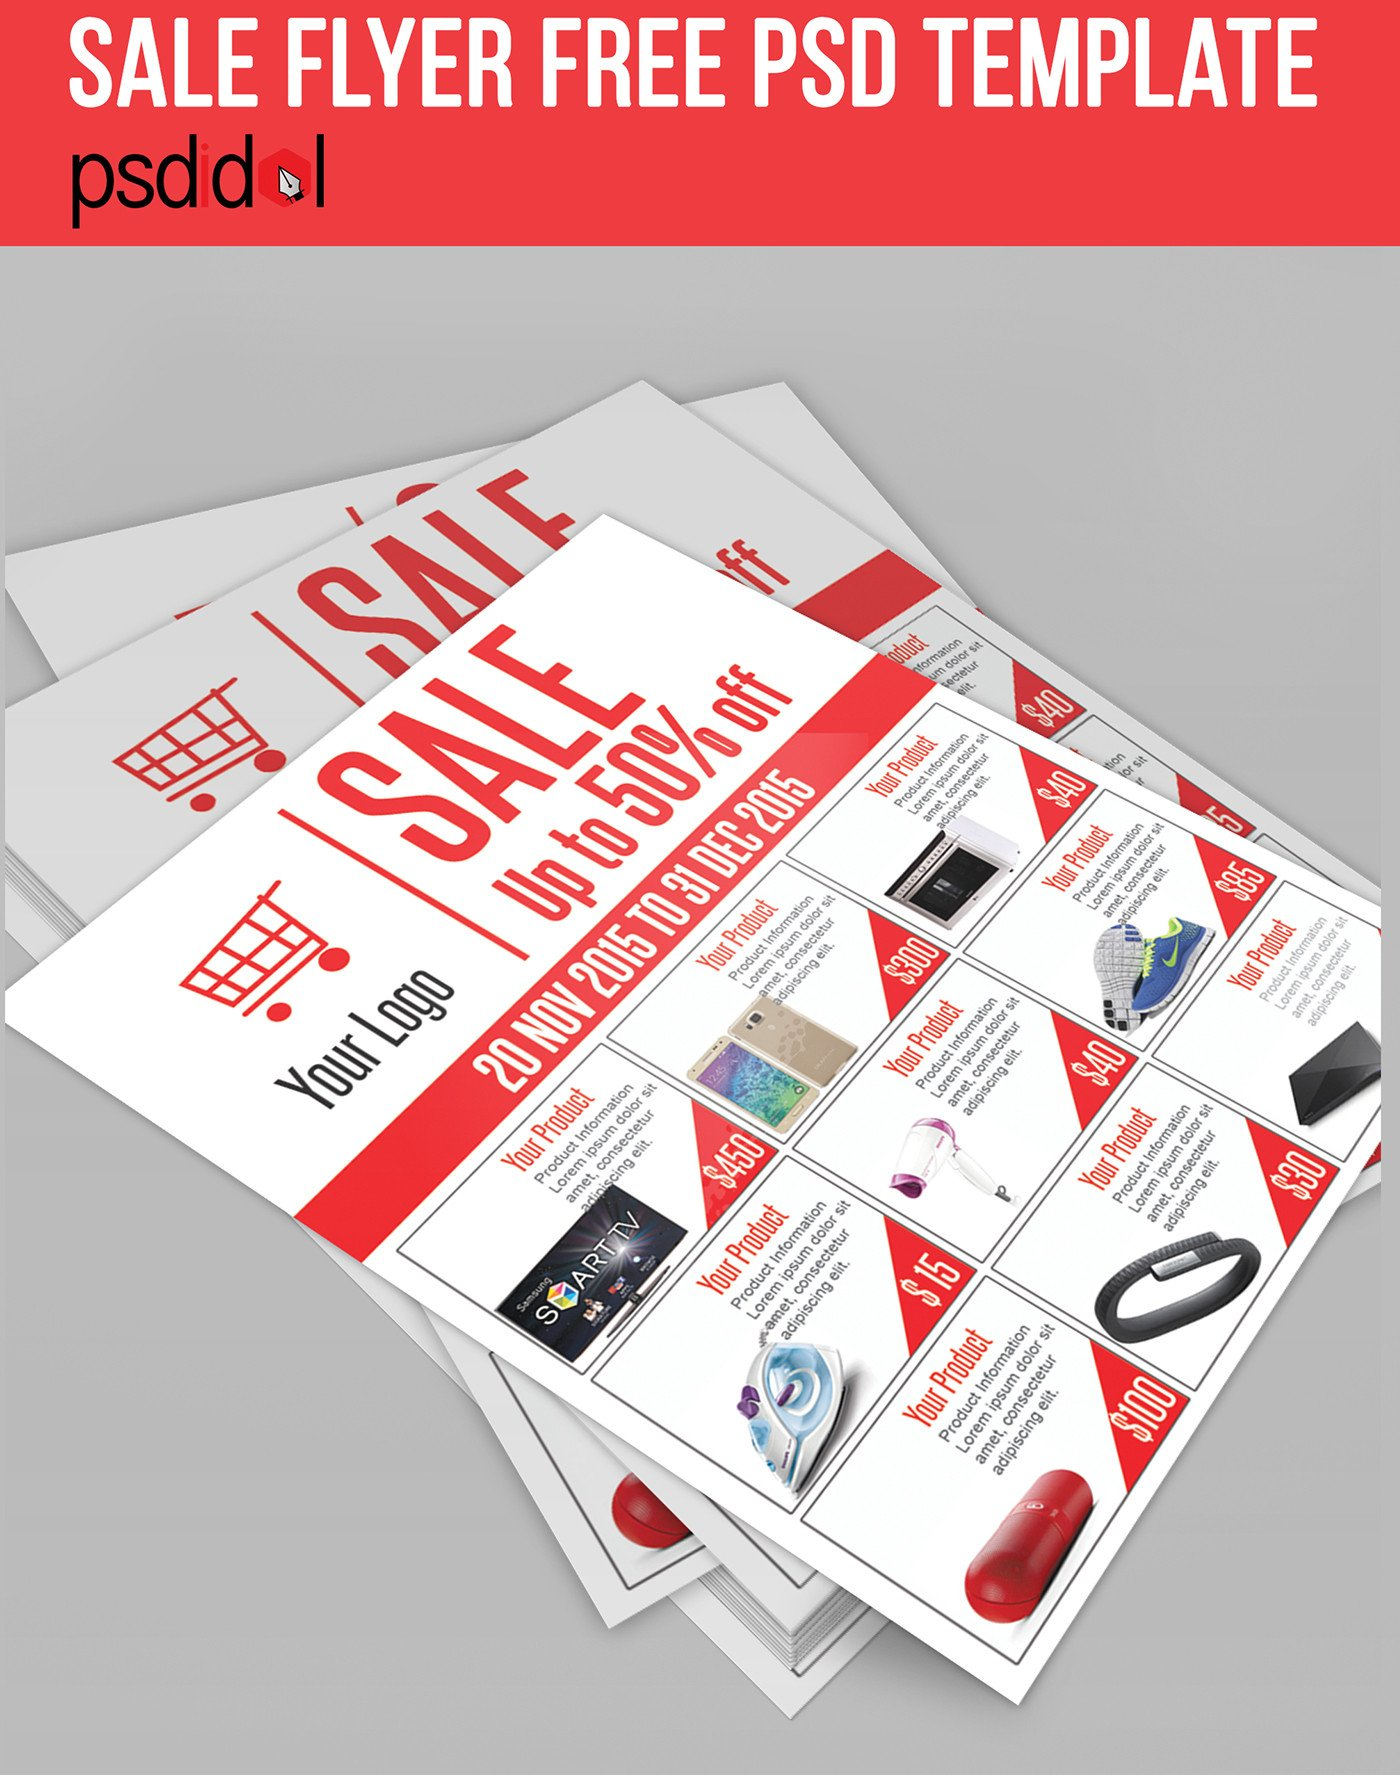 Free Sale Flyer Template Sale Flyer Free Psd Template Download On Behance